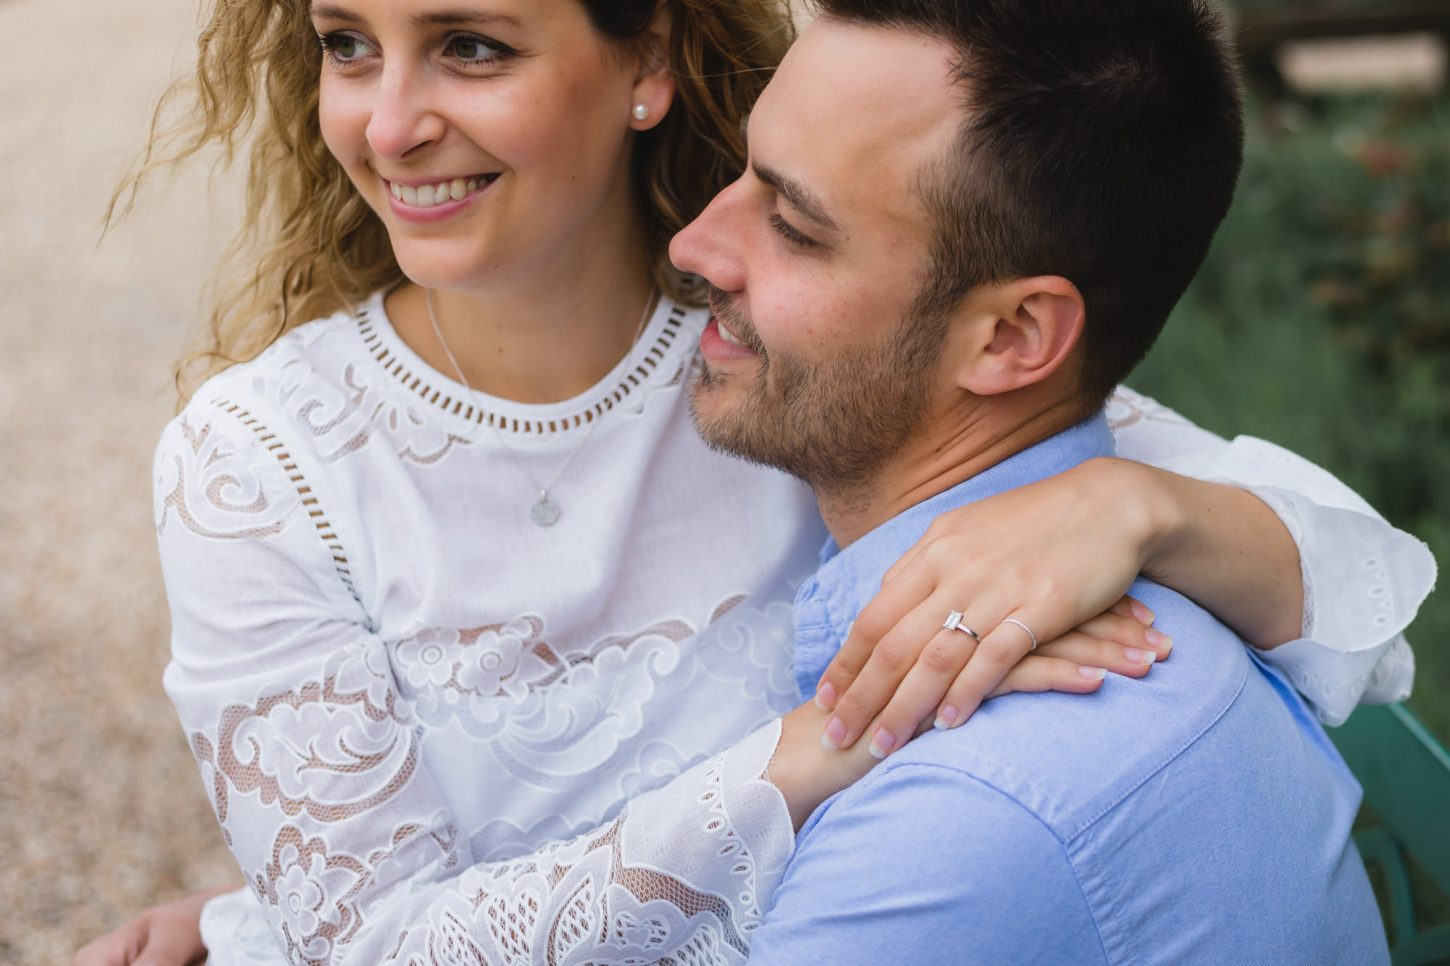 A romantic couple on their engagement photo shoot is posing and hugging each other.